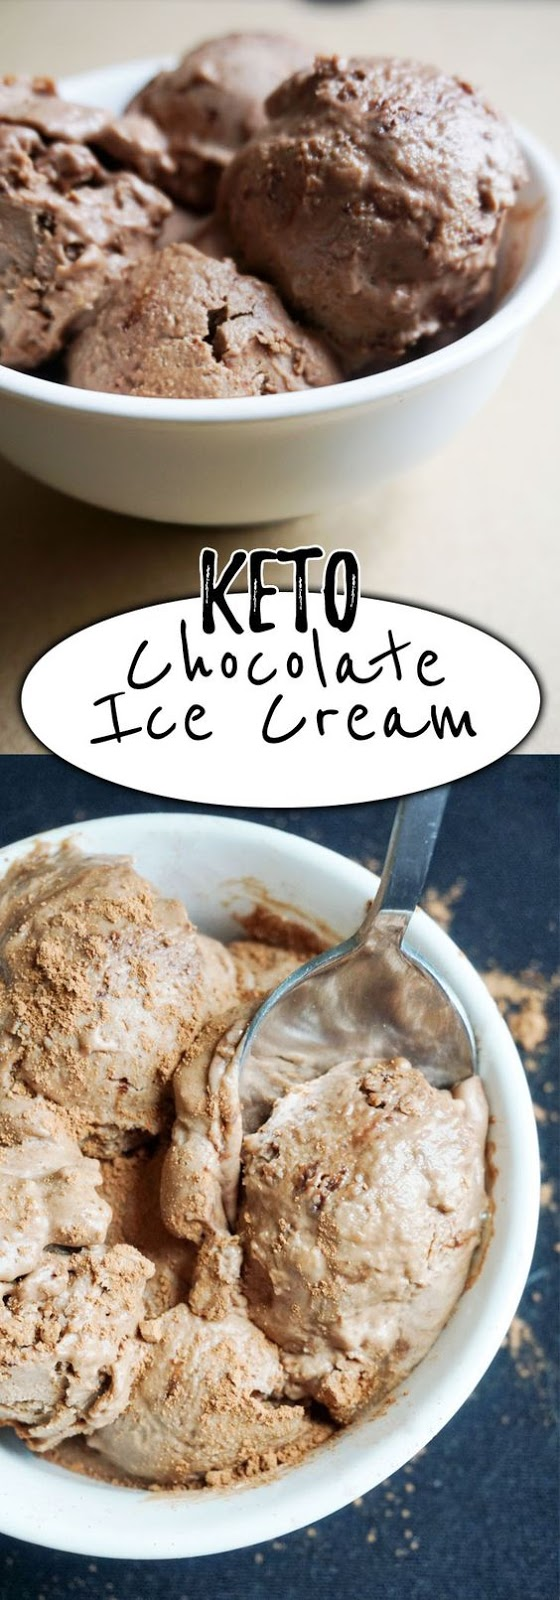 KETO/LOW CARB ICE CREAM